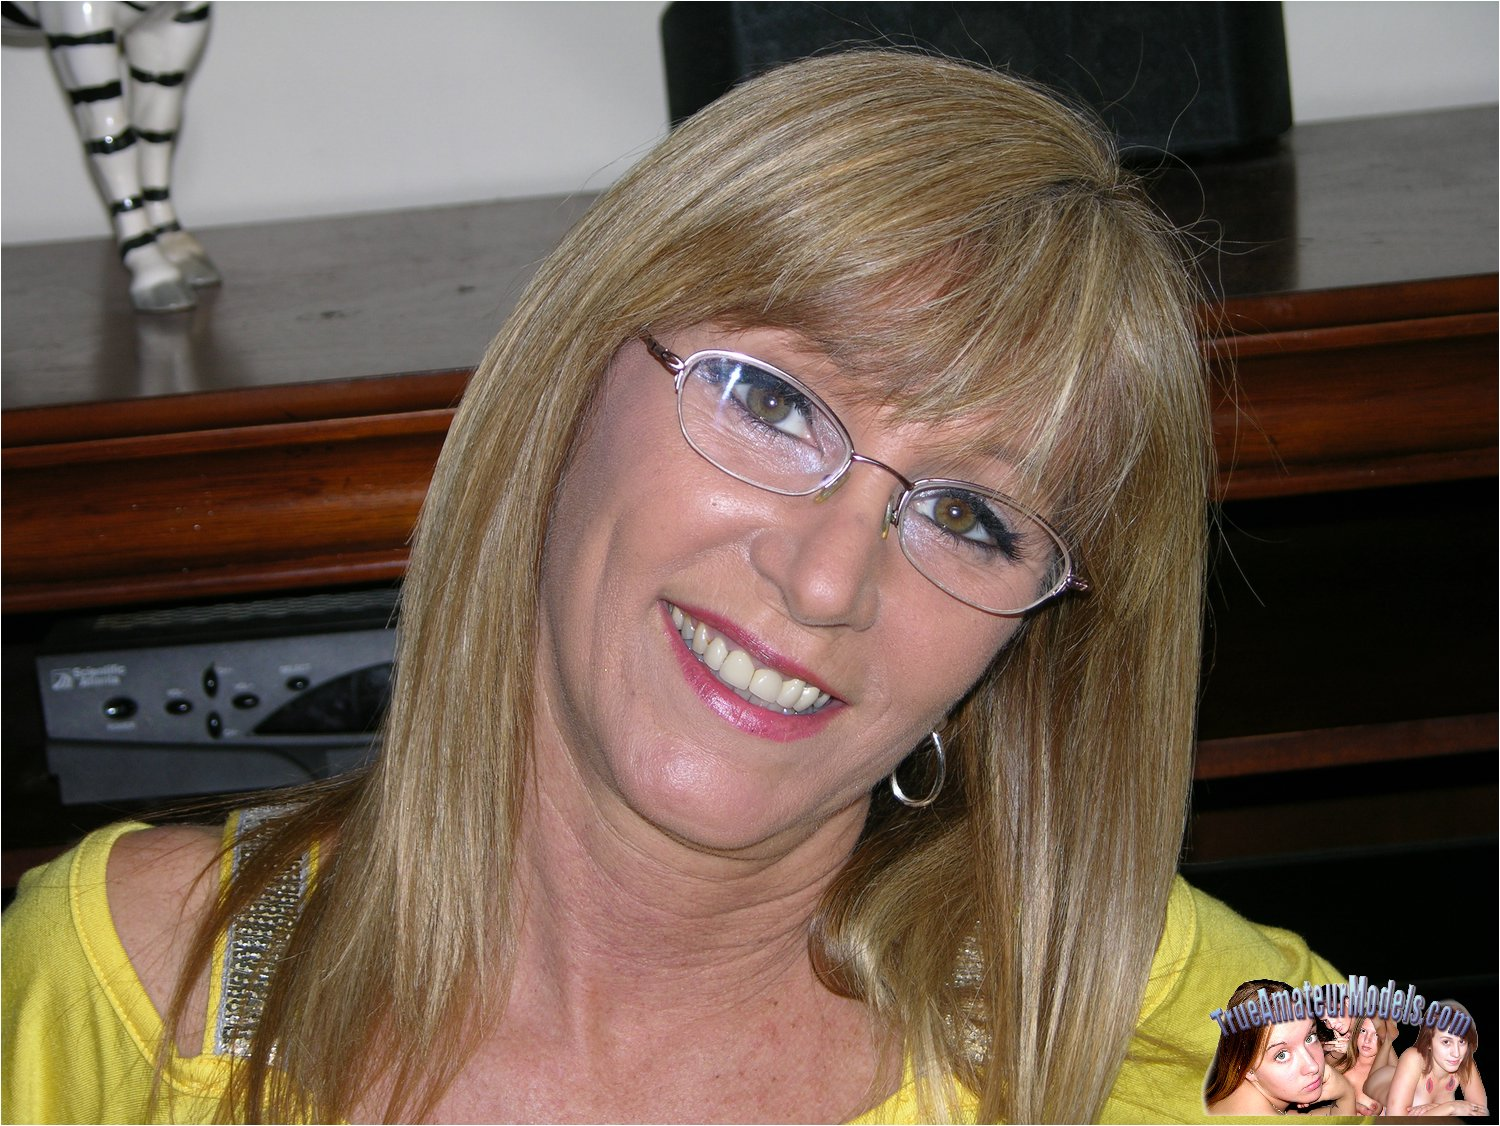 All Nude milf wearing glasses right! like